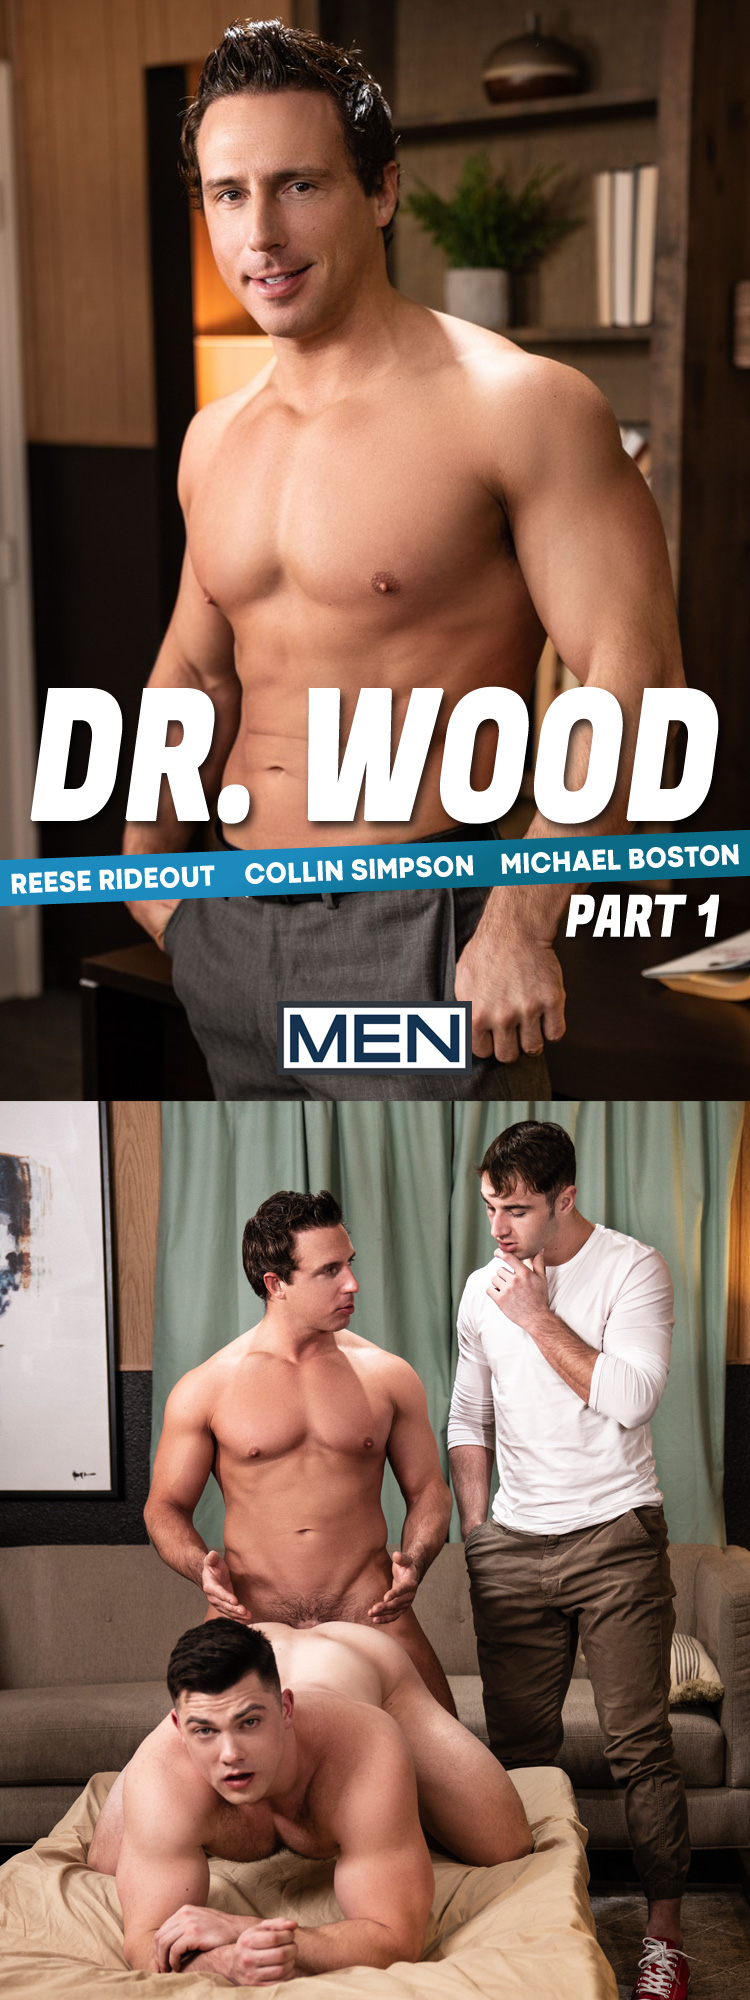 Reese Rideout is Doctor Wood